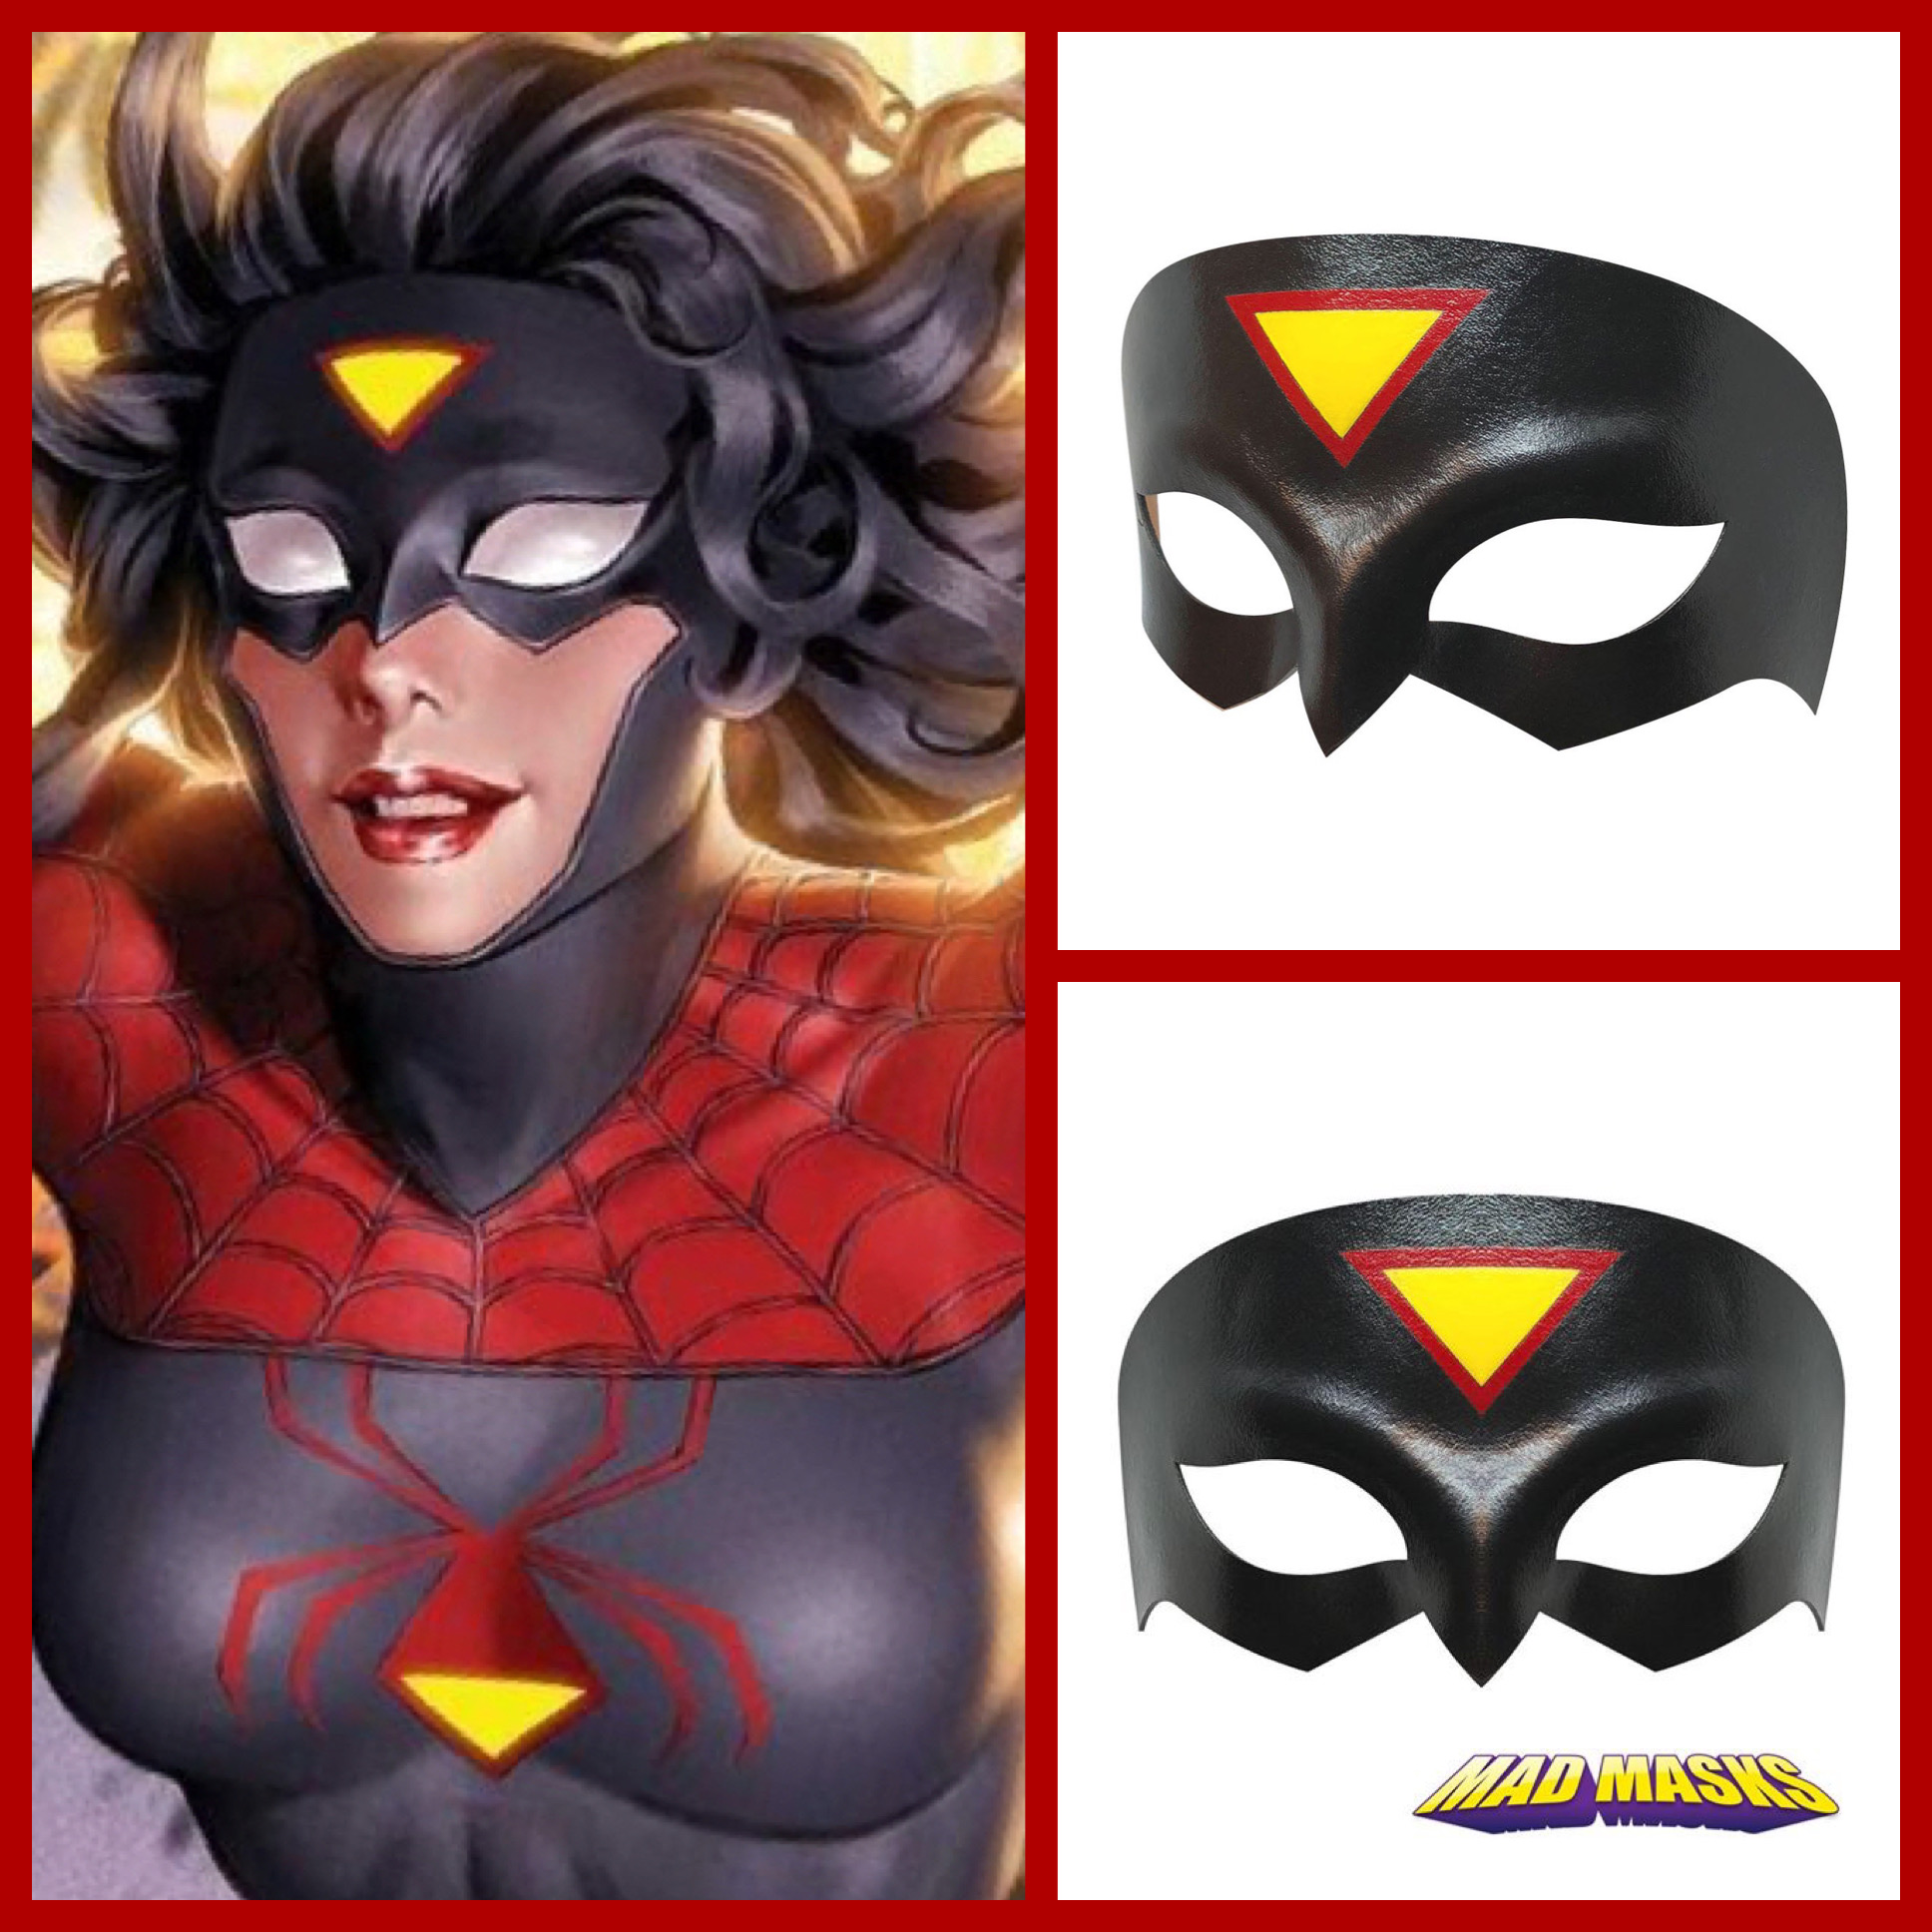 spider-woman-mask.jpg